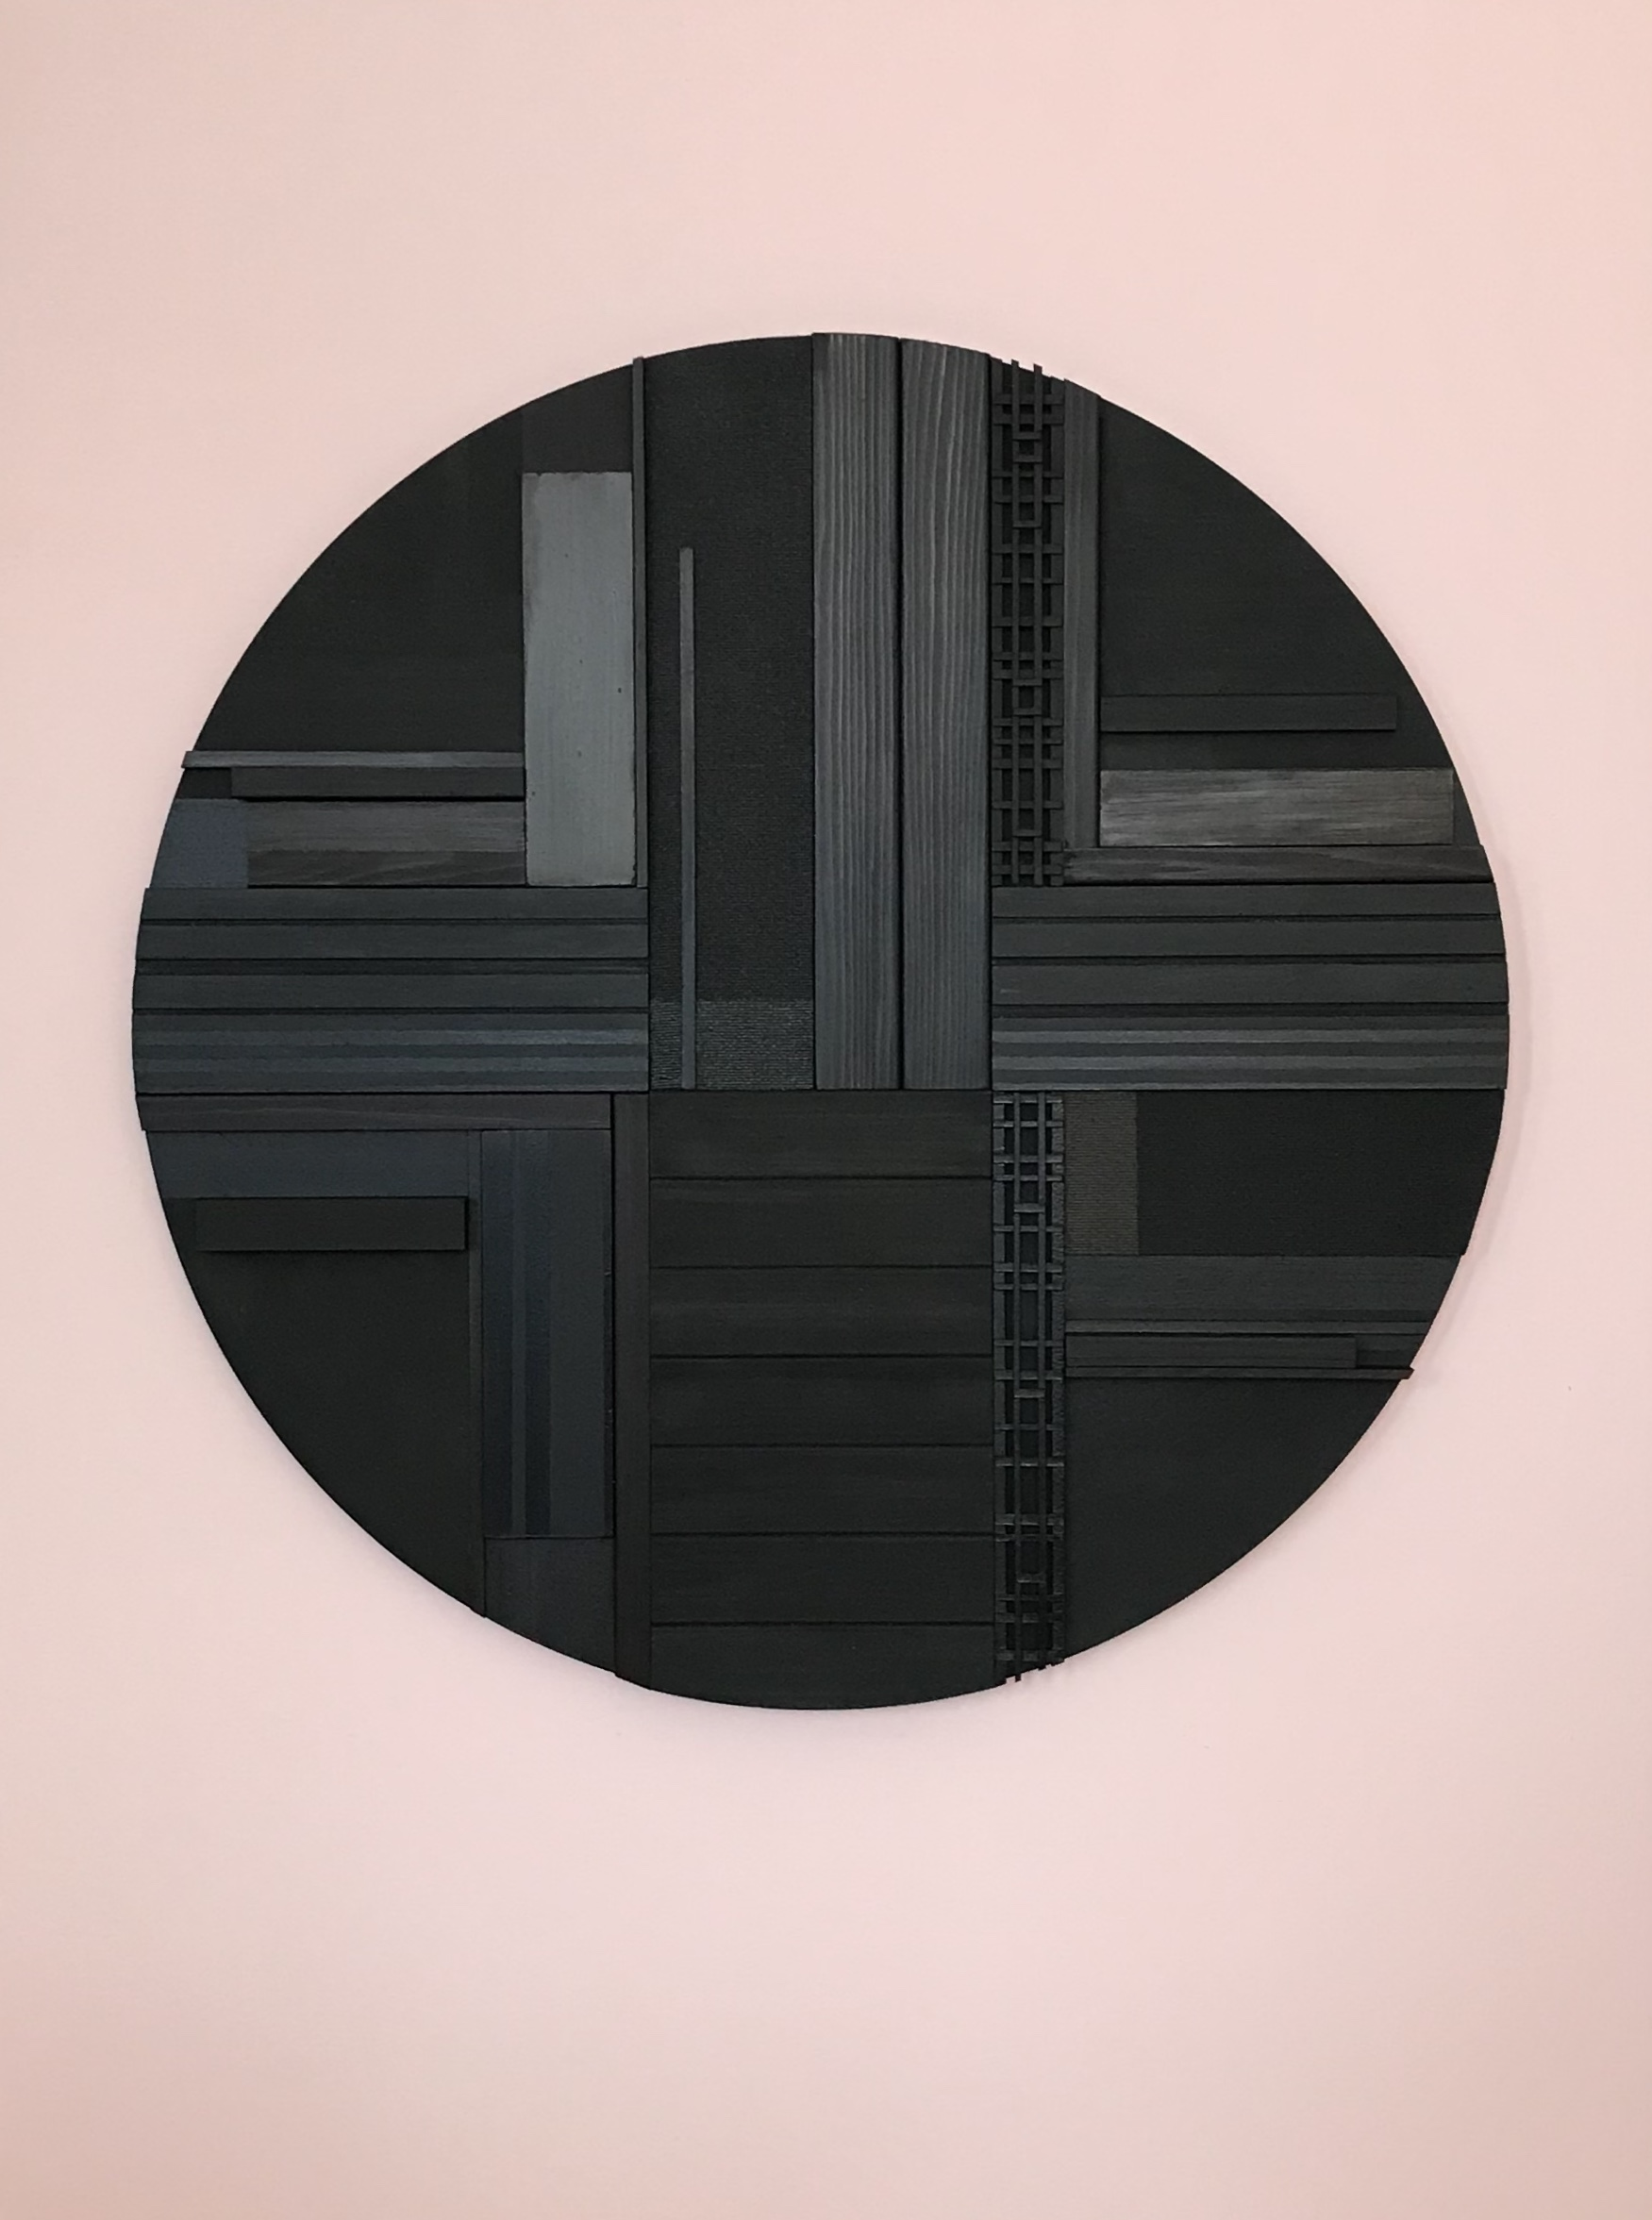 "Cameron McKay, ""Hunk"", CMK014, 2019, Acrylic,charred cedar,mdf on canvas, 40"" x 30"", $1,540.00 Unframed (+ taxes)"